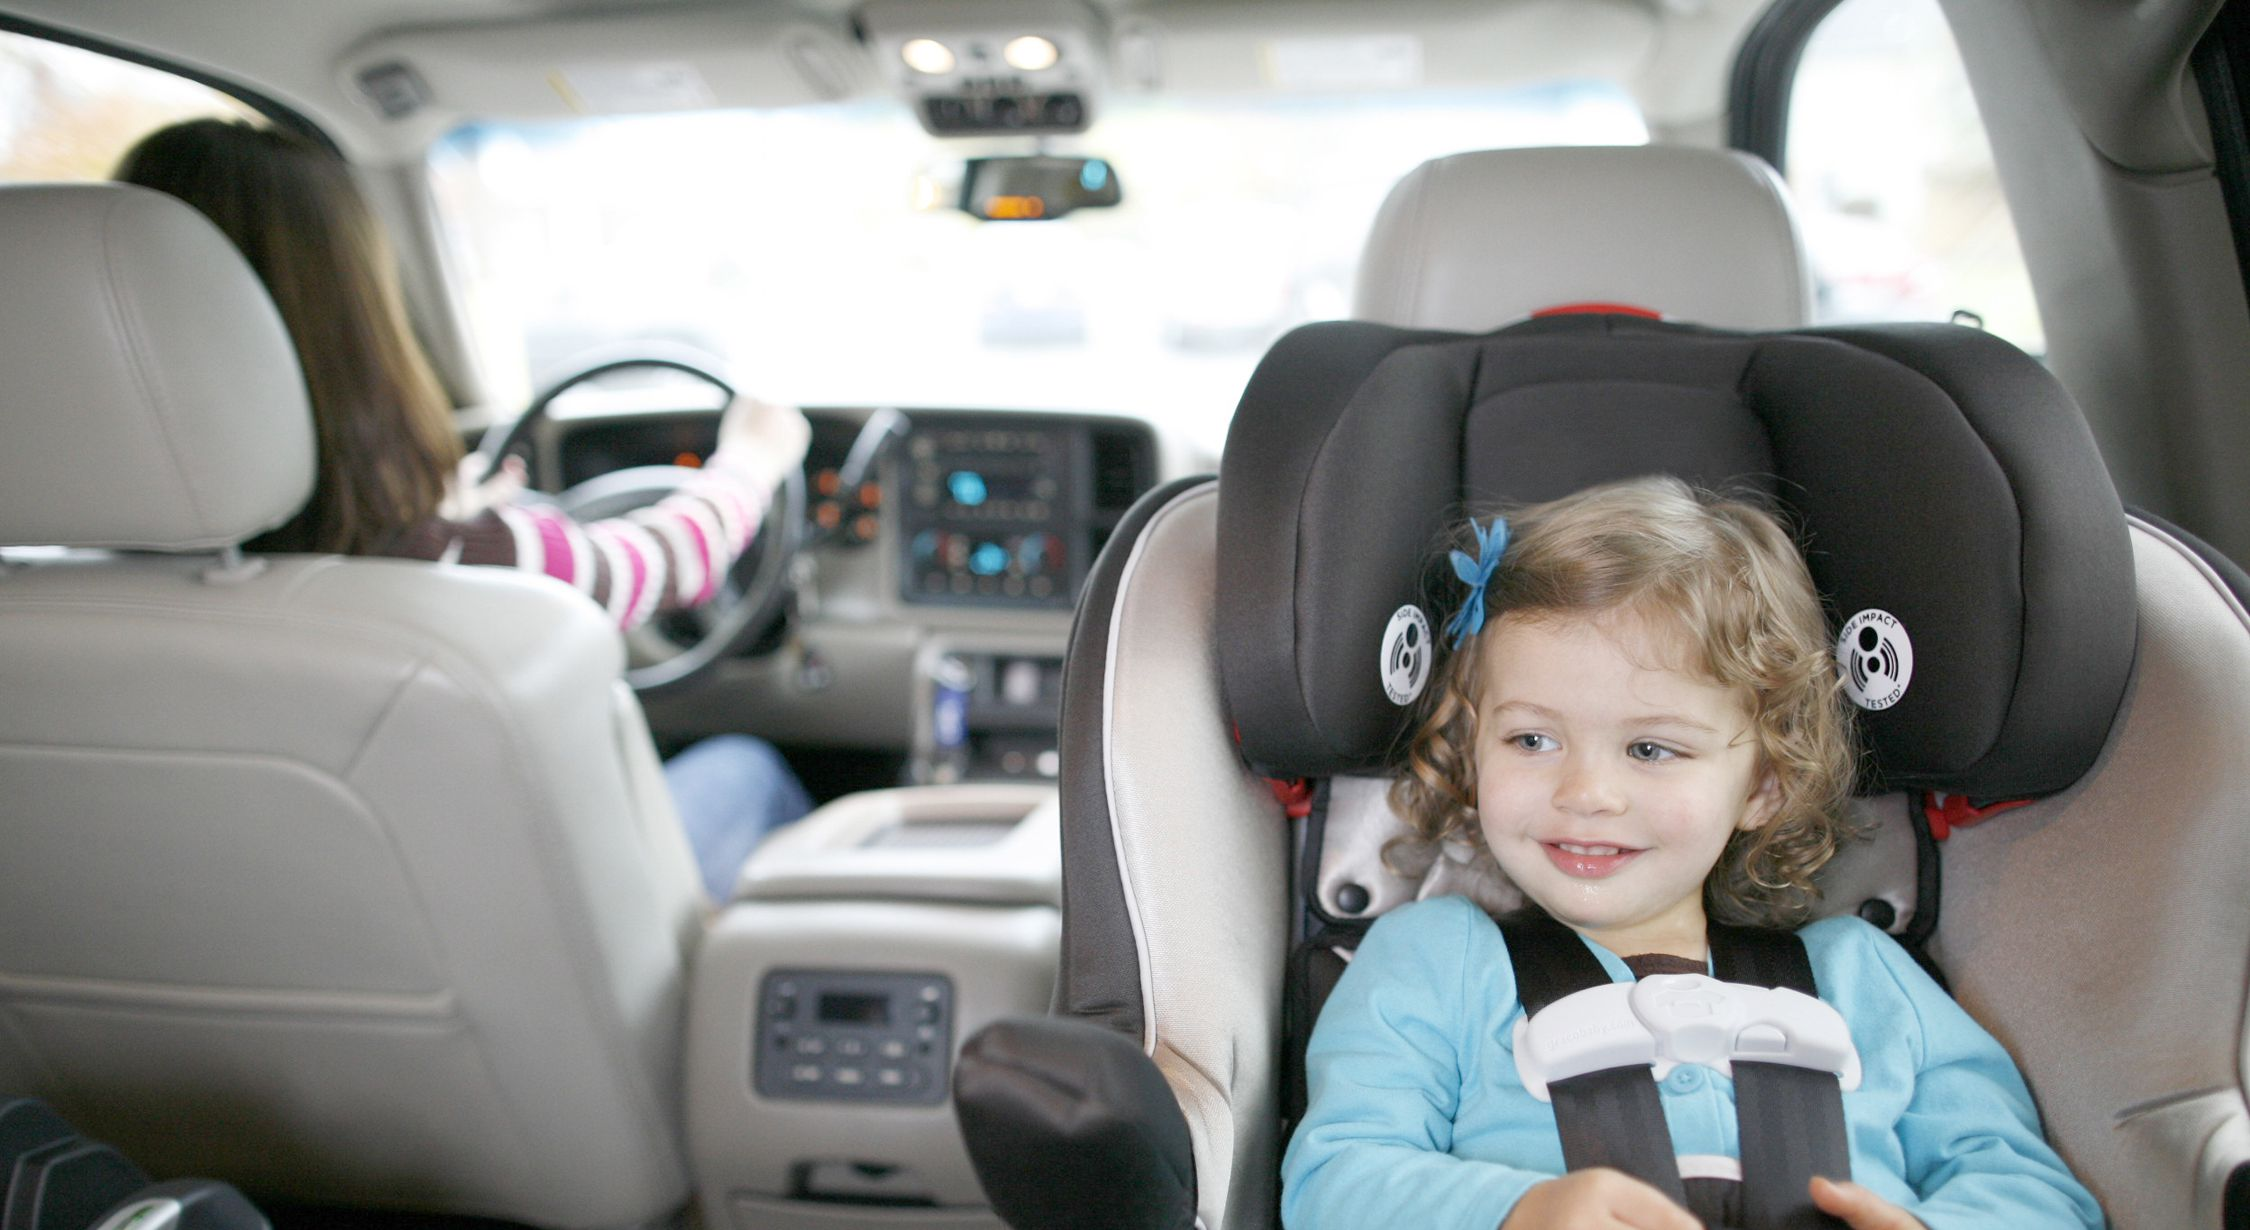 Keeping Your Baby In A Rear Facing Car Seat, Is It Illegal To Have A Car Seat Facing Forward